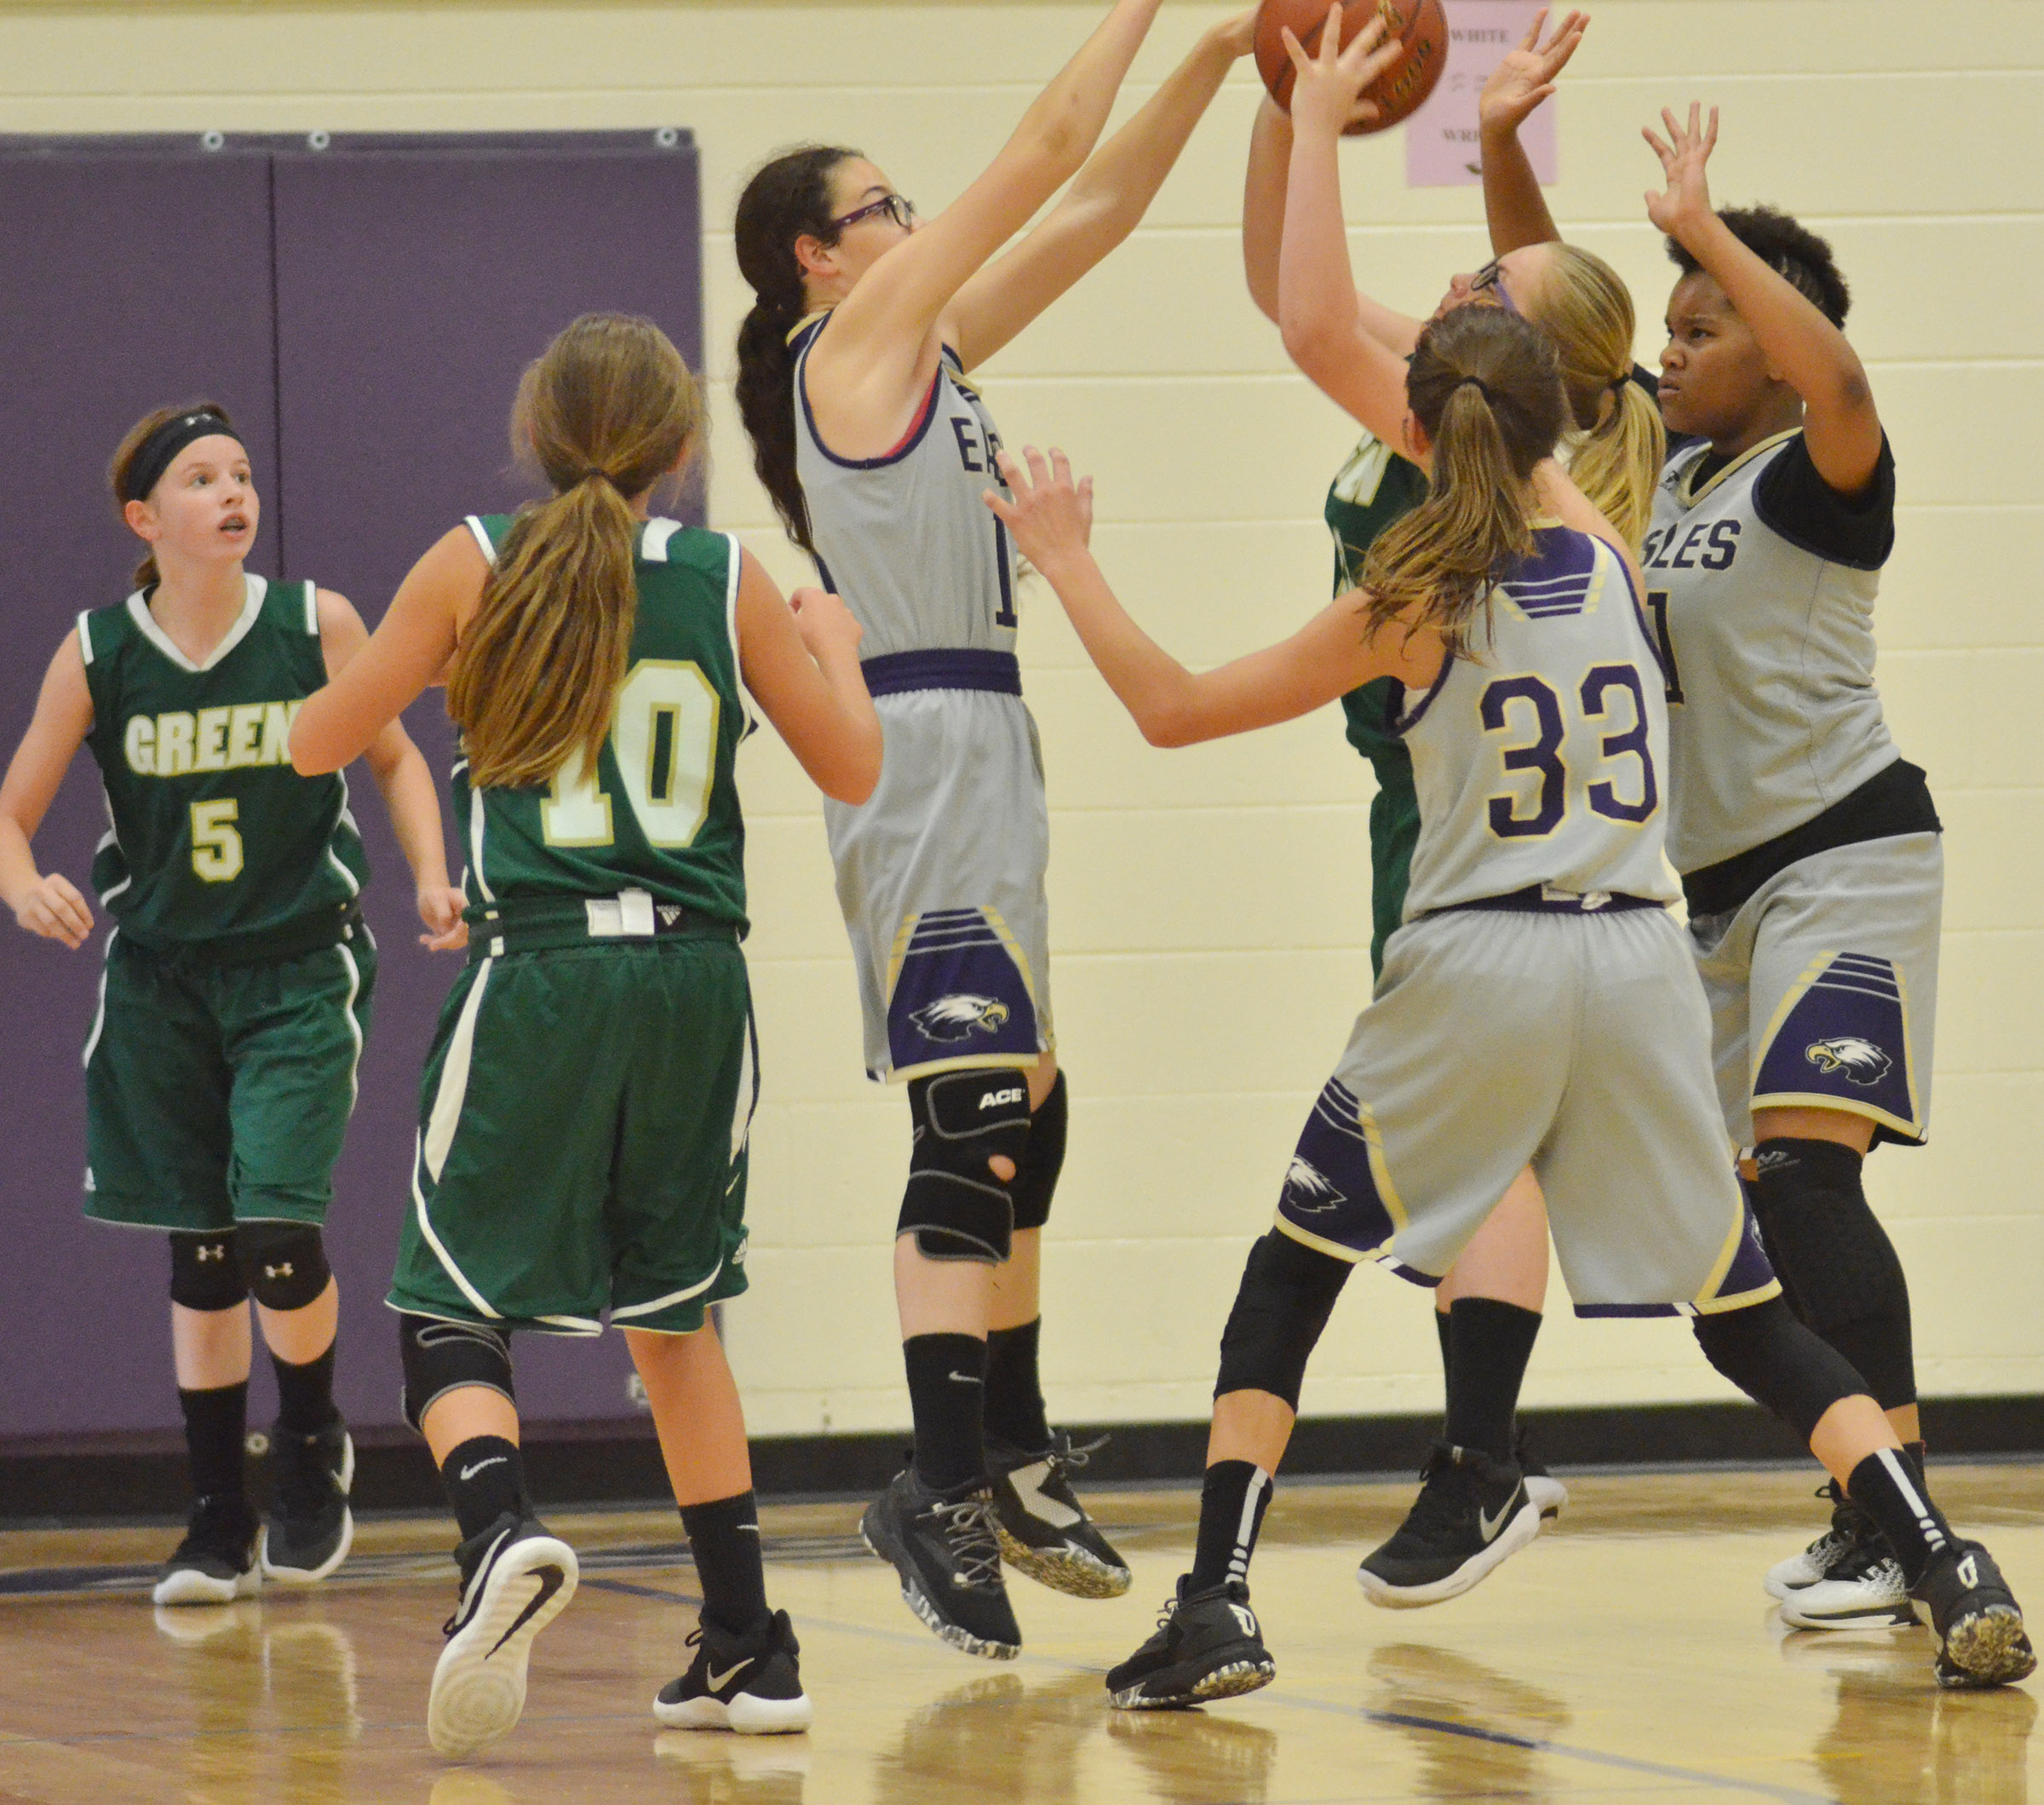 From left, CMS seventh-graders Mary Russell, Bri Hayes and Antaya Epps battle for the ball.